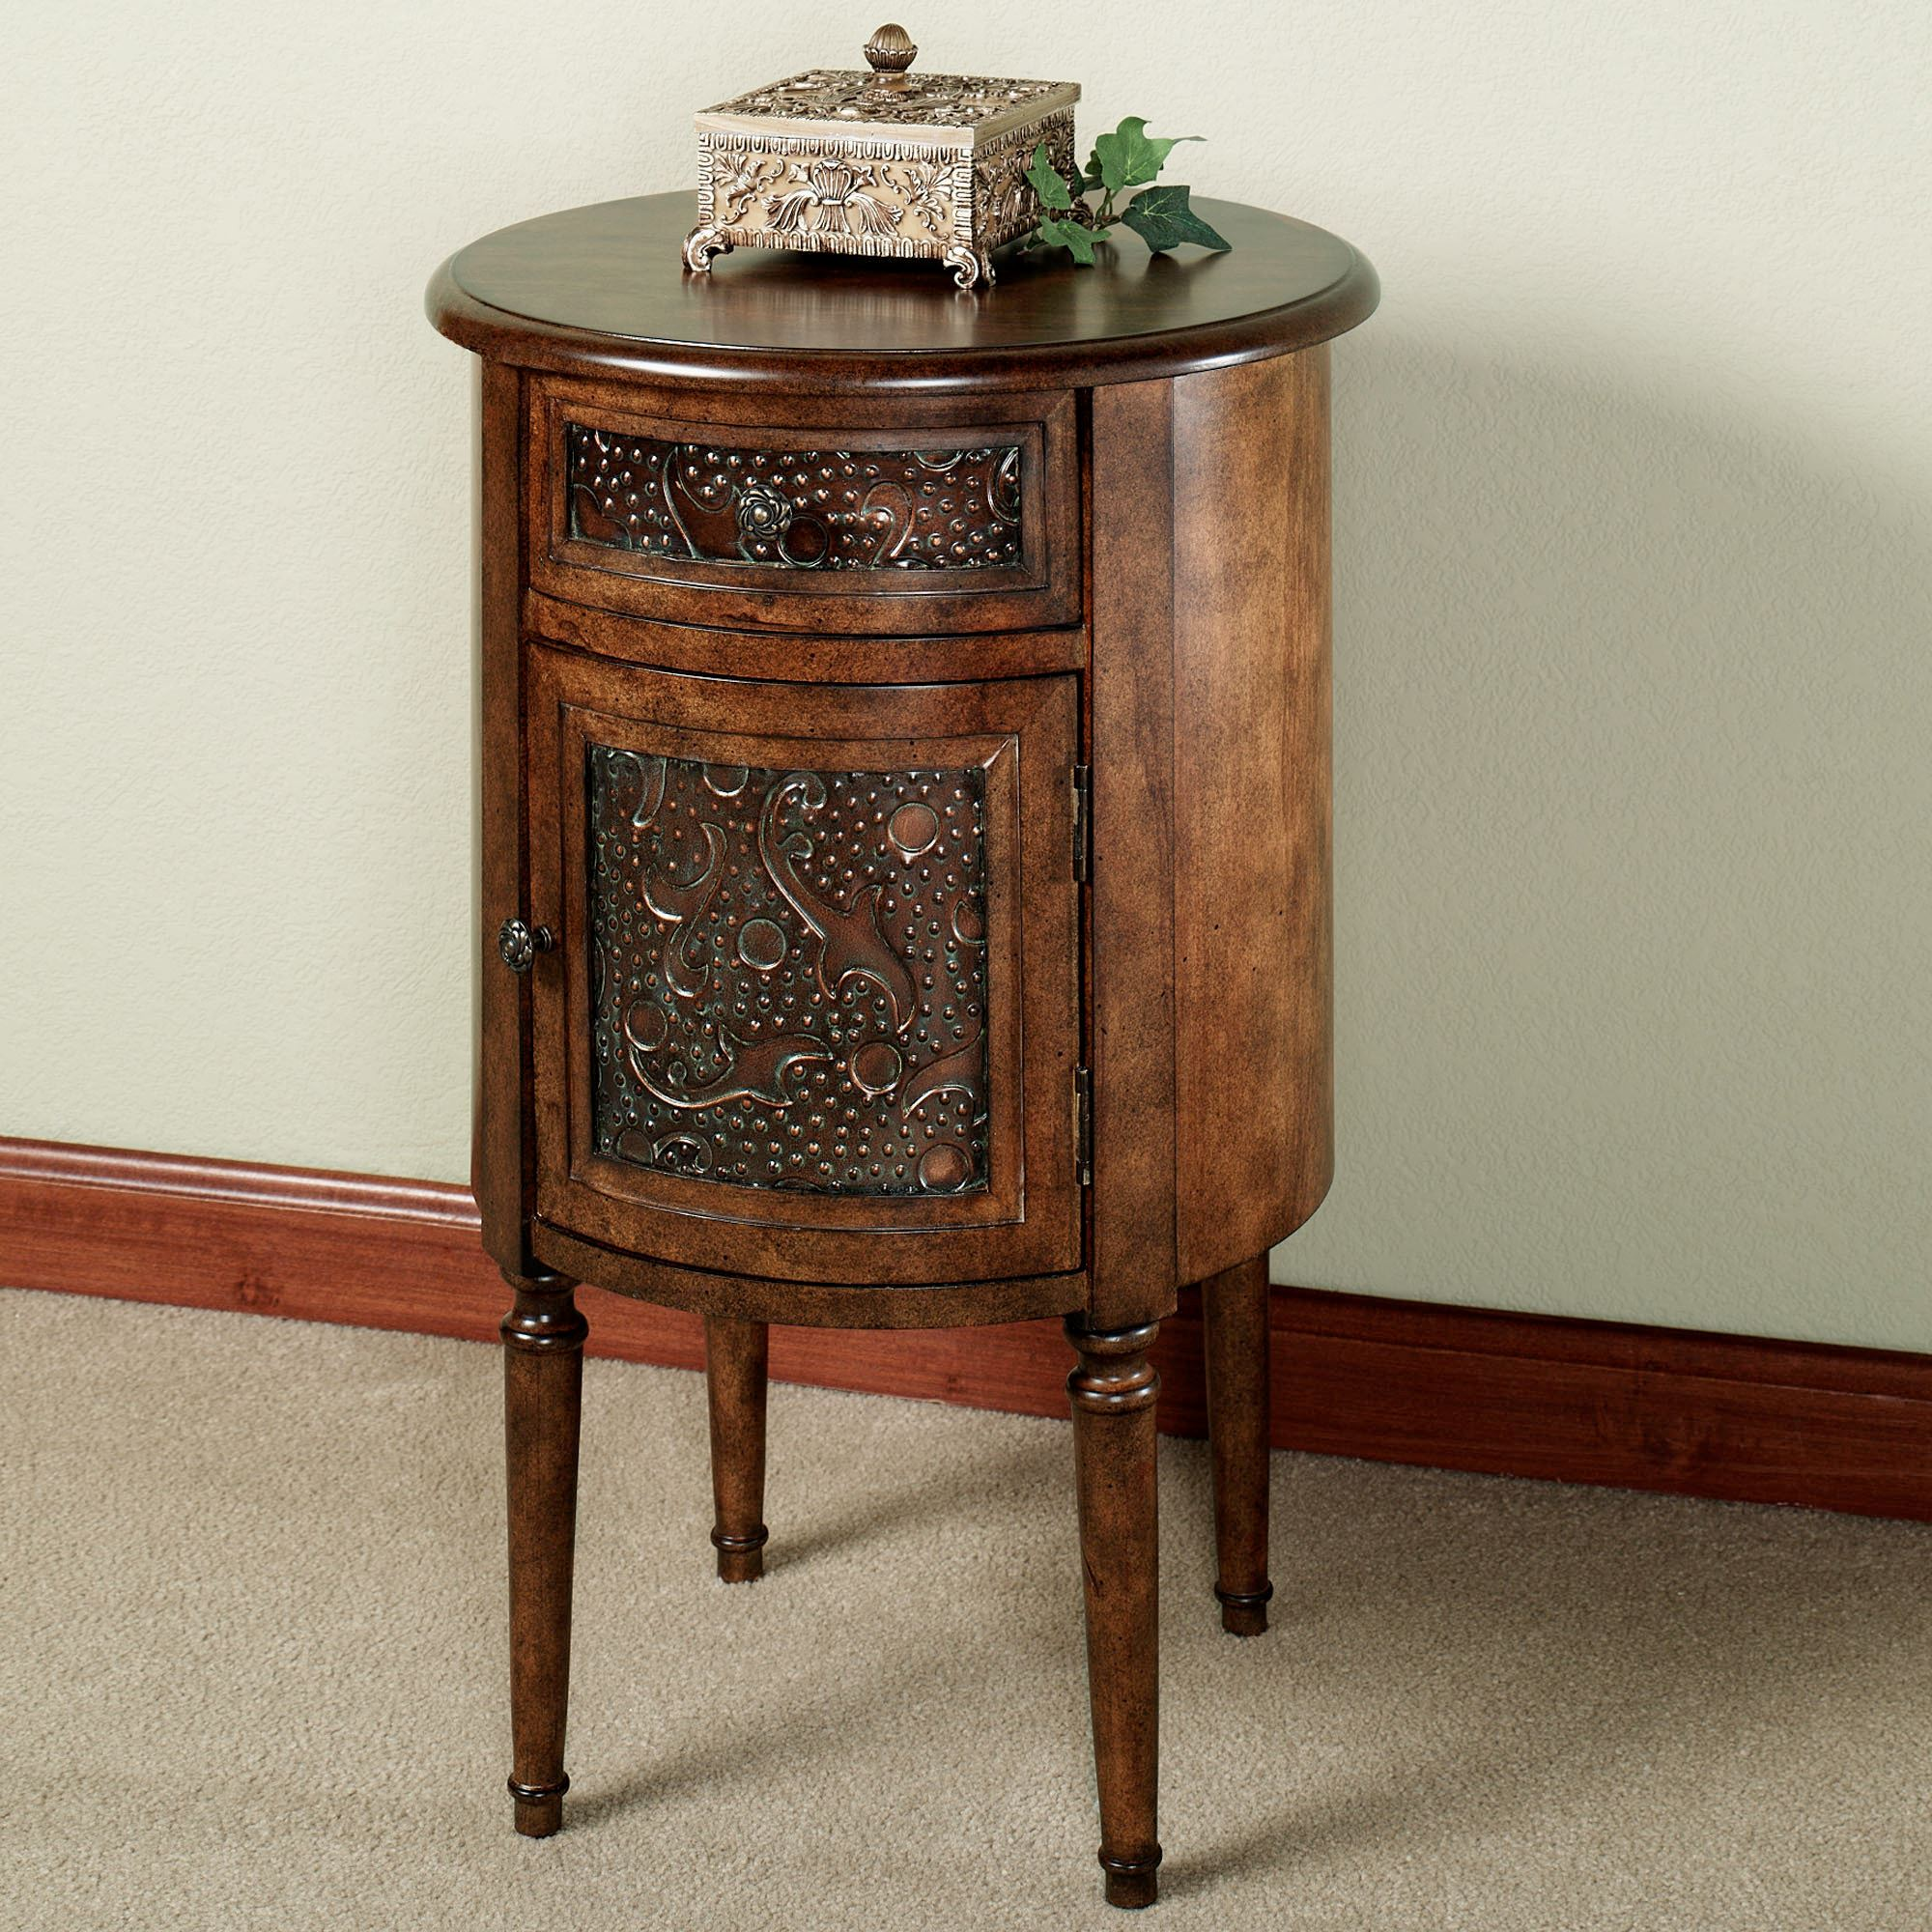 lombardy round storage accent table end with doors touch zoom outside modern runner infant high chair above toilet shelf asian furniture small nesting coffee tables antique trunk